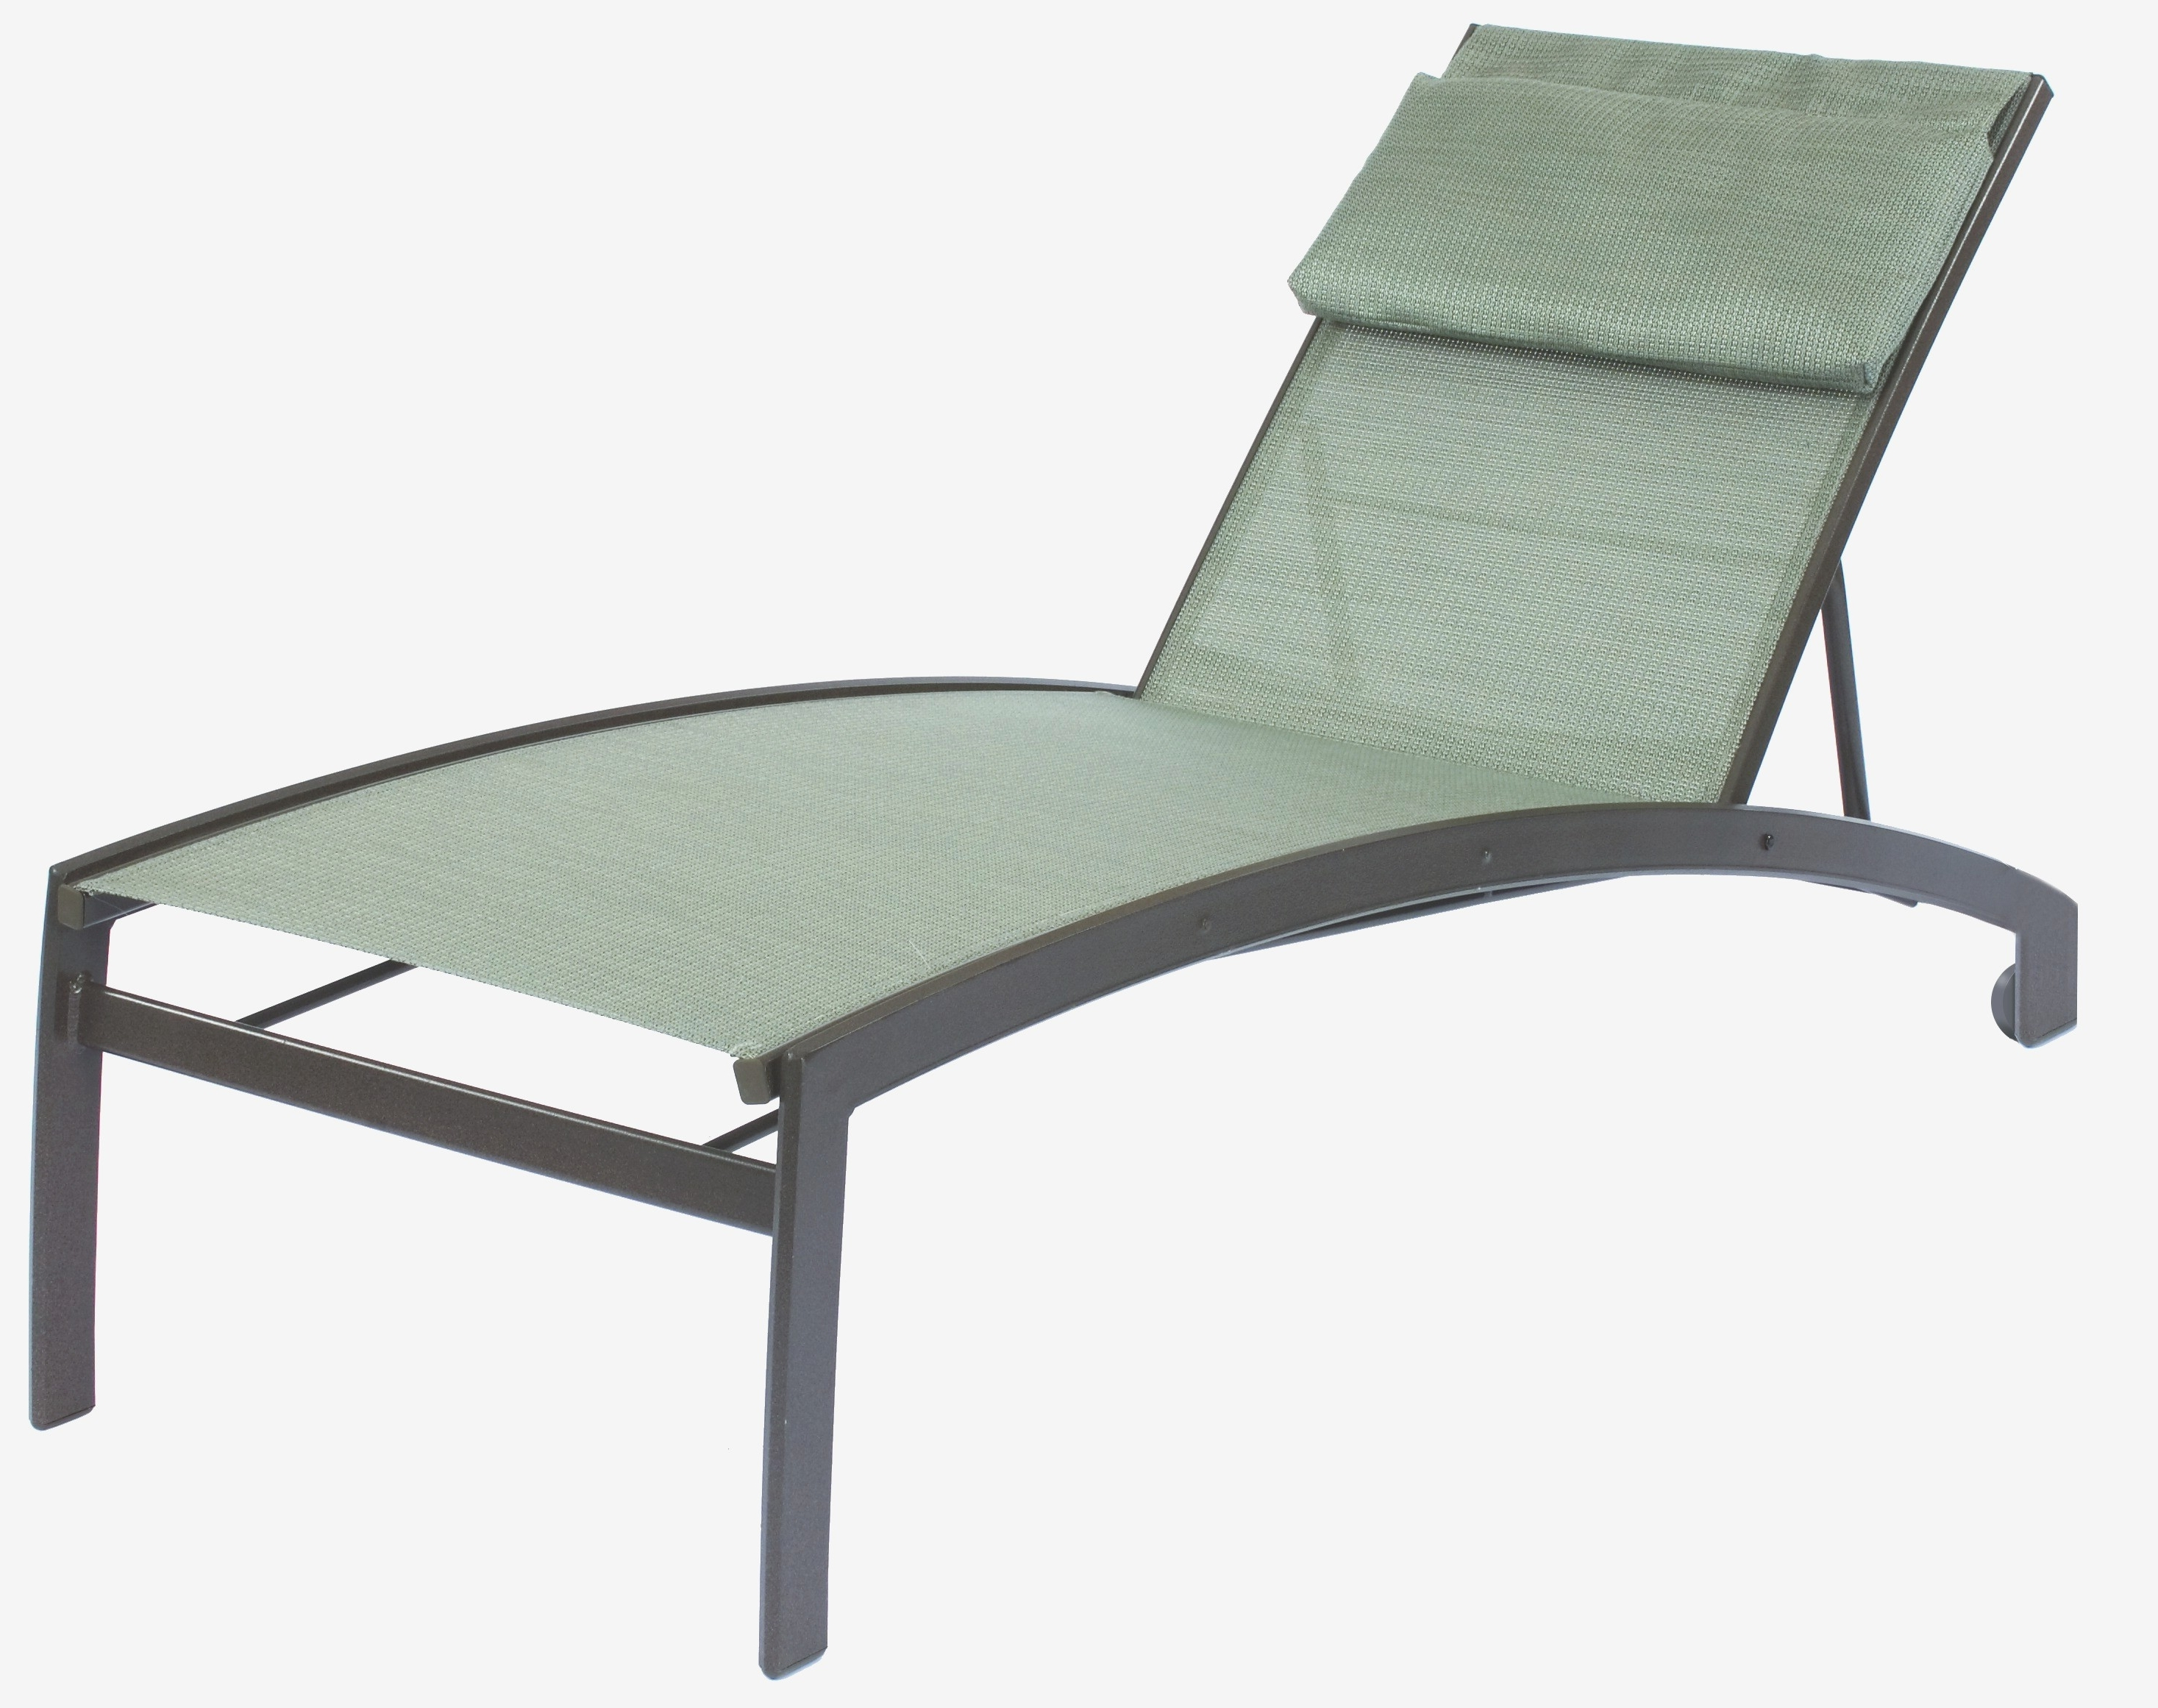 Well Known Suncoast Patio Furniture Luxury Outdoor Chaise Lounge Chairs With With Regard To Luxury Outdoor Chaise Lounge Chairs (View 13 of 15)